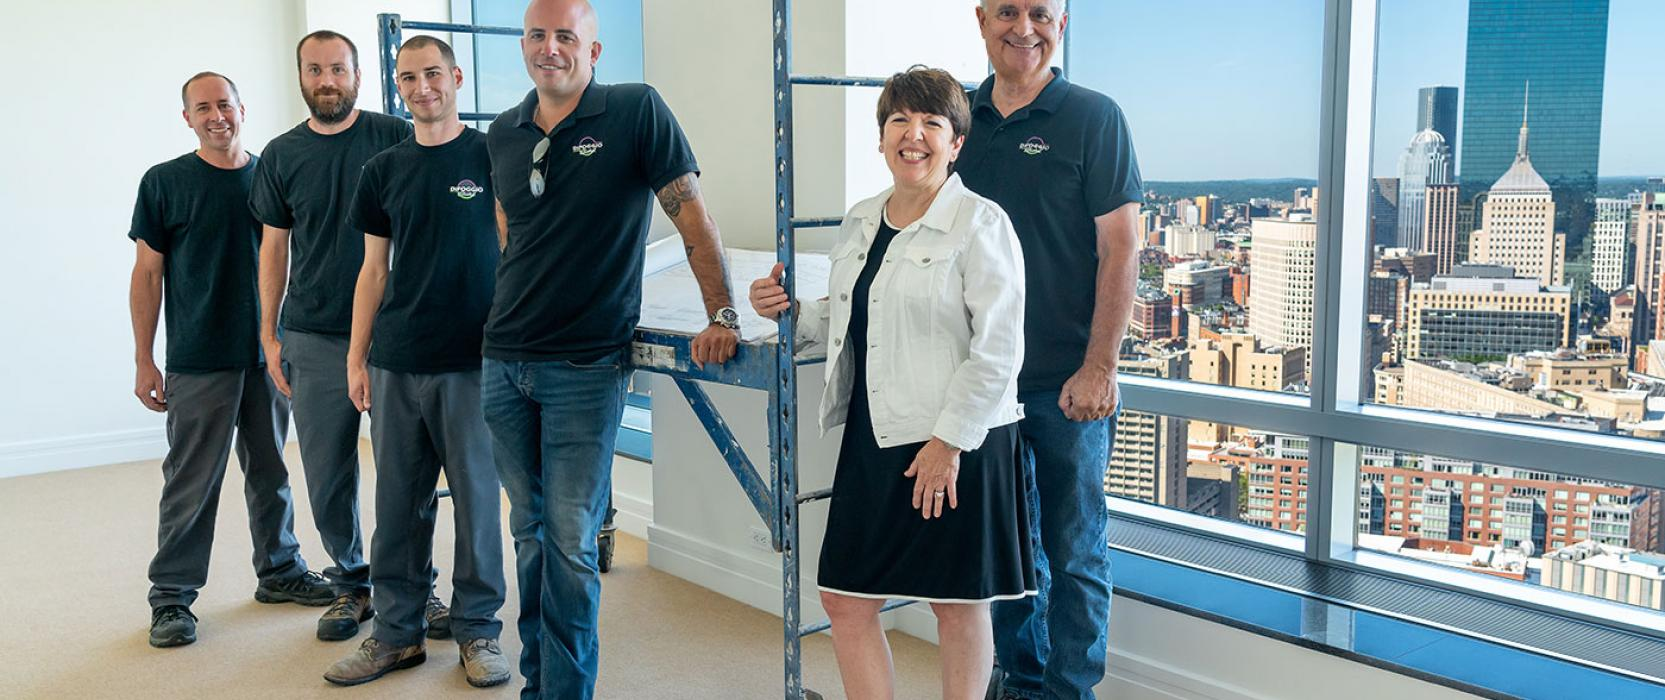 DiFoggio Electric, a full-service electrical contracting company in Boston